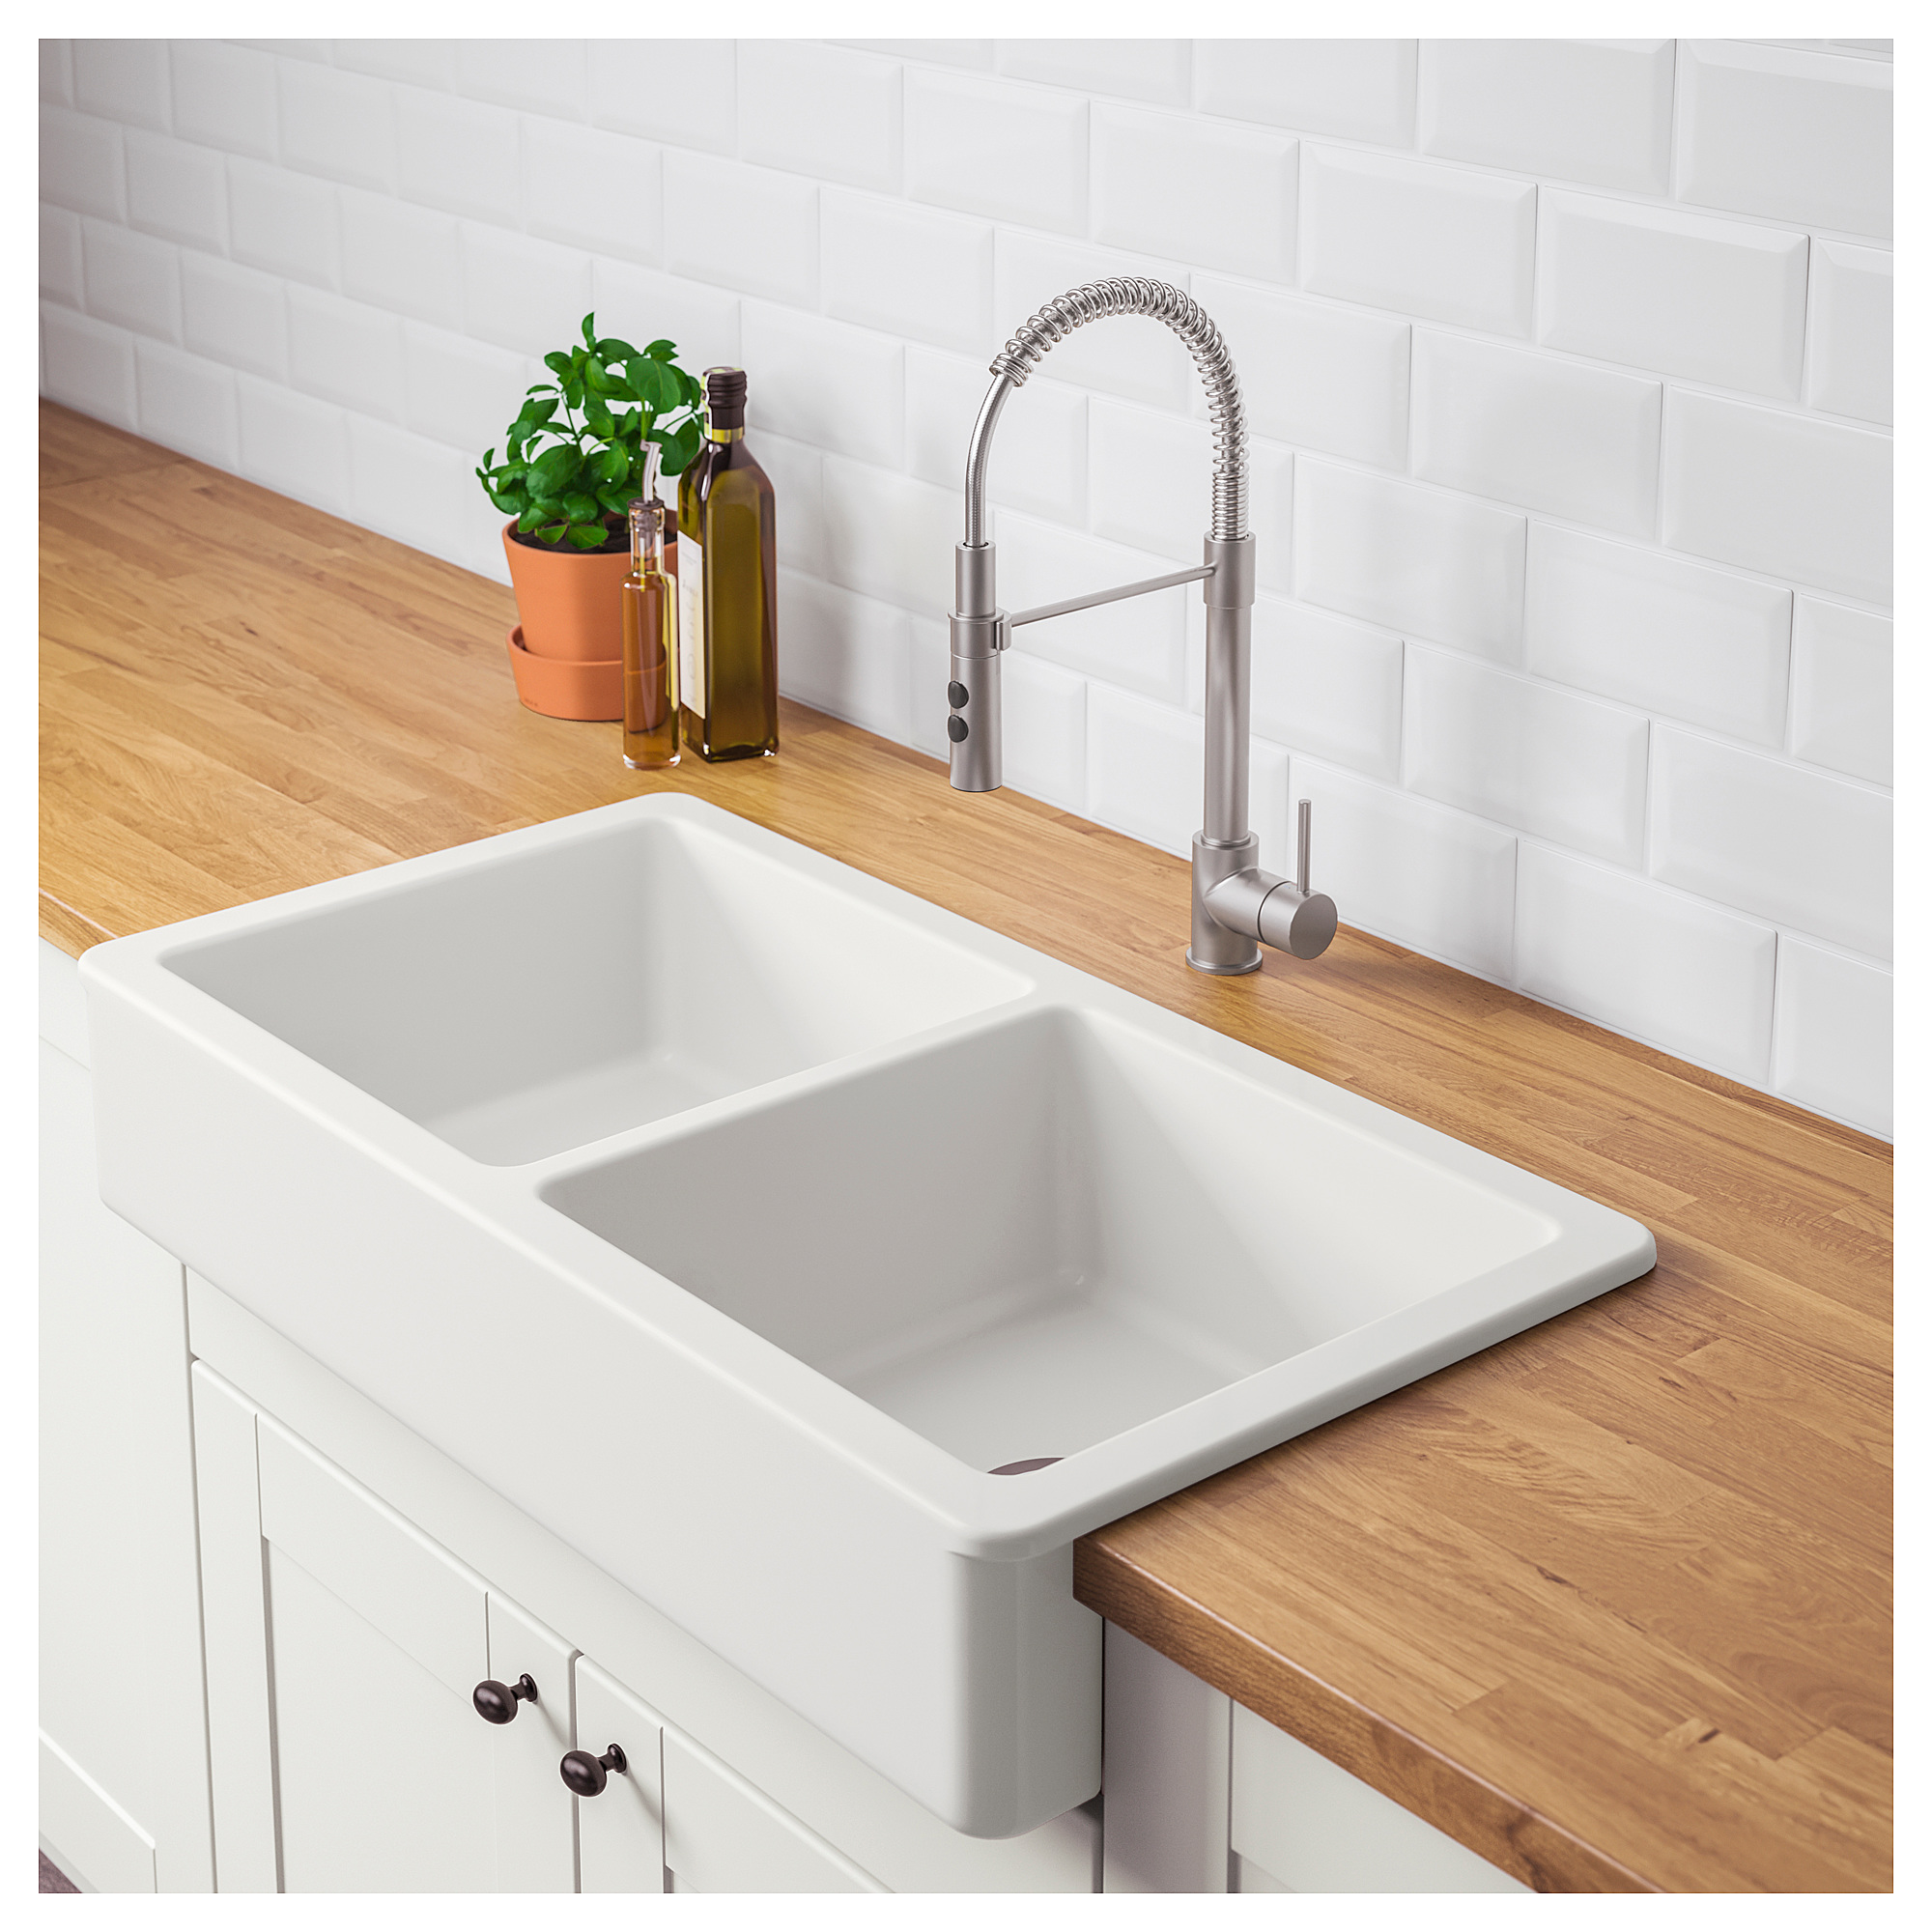 Ikea Farmers Sink: IKEA HAVSEN White Apron Front Double Bowl Sink